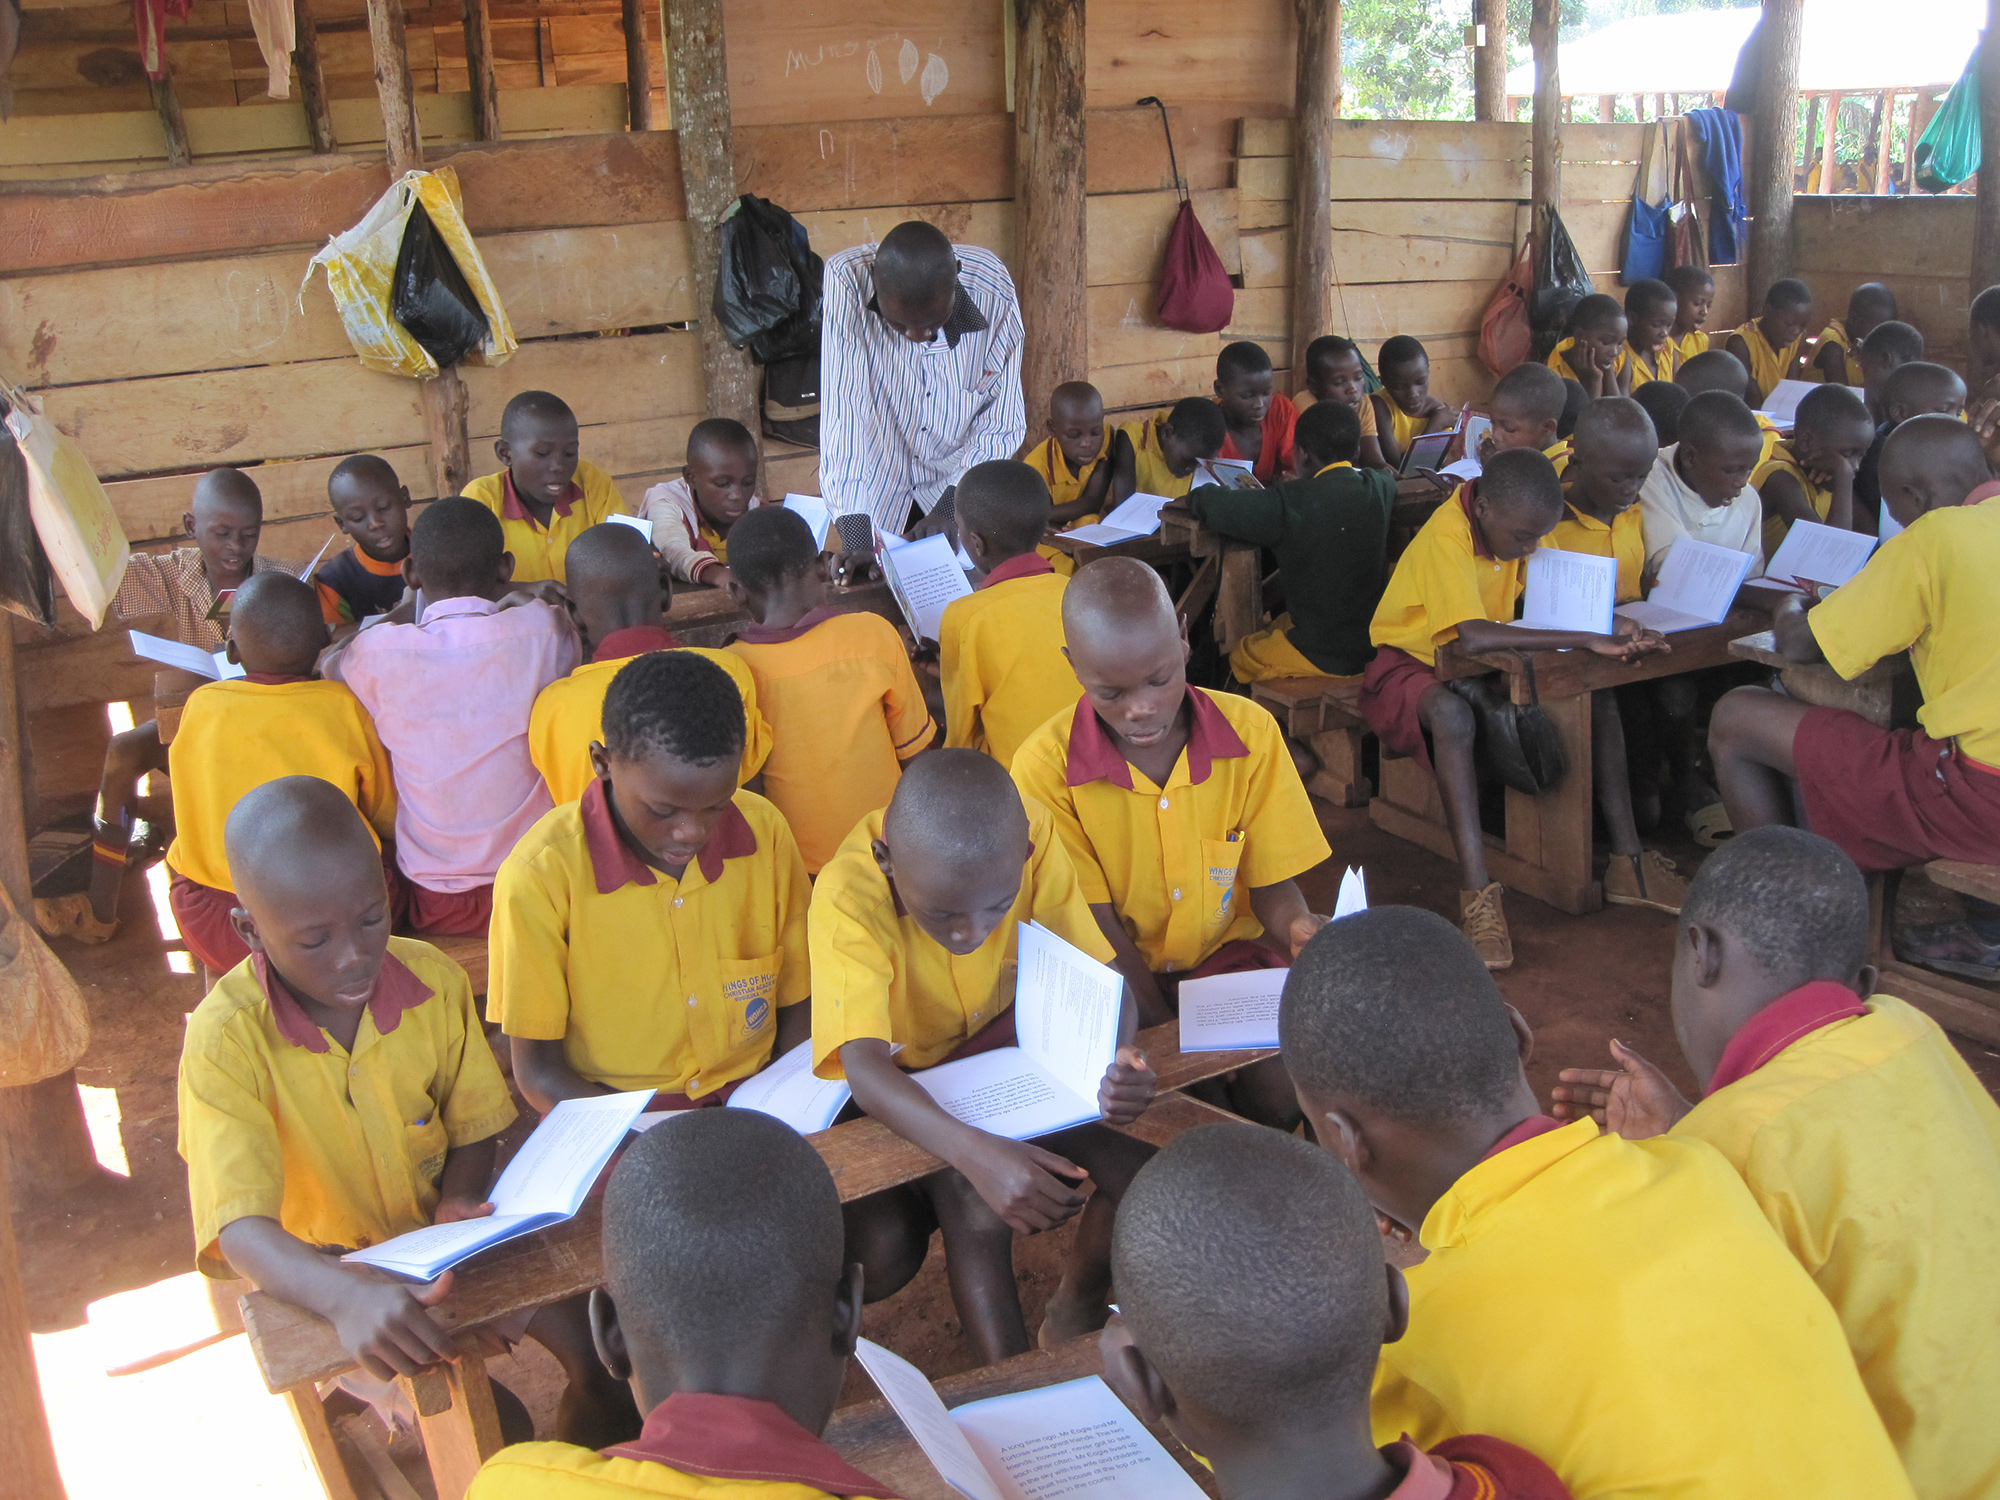 Wings of Hope Primary School  Our students reading aloud from books generously donated by supporters like you